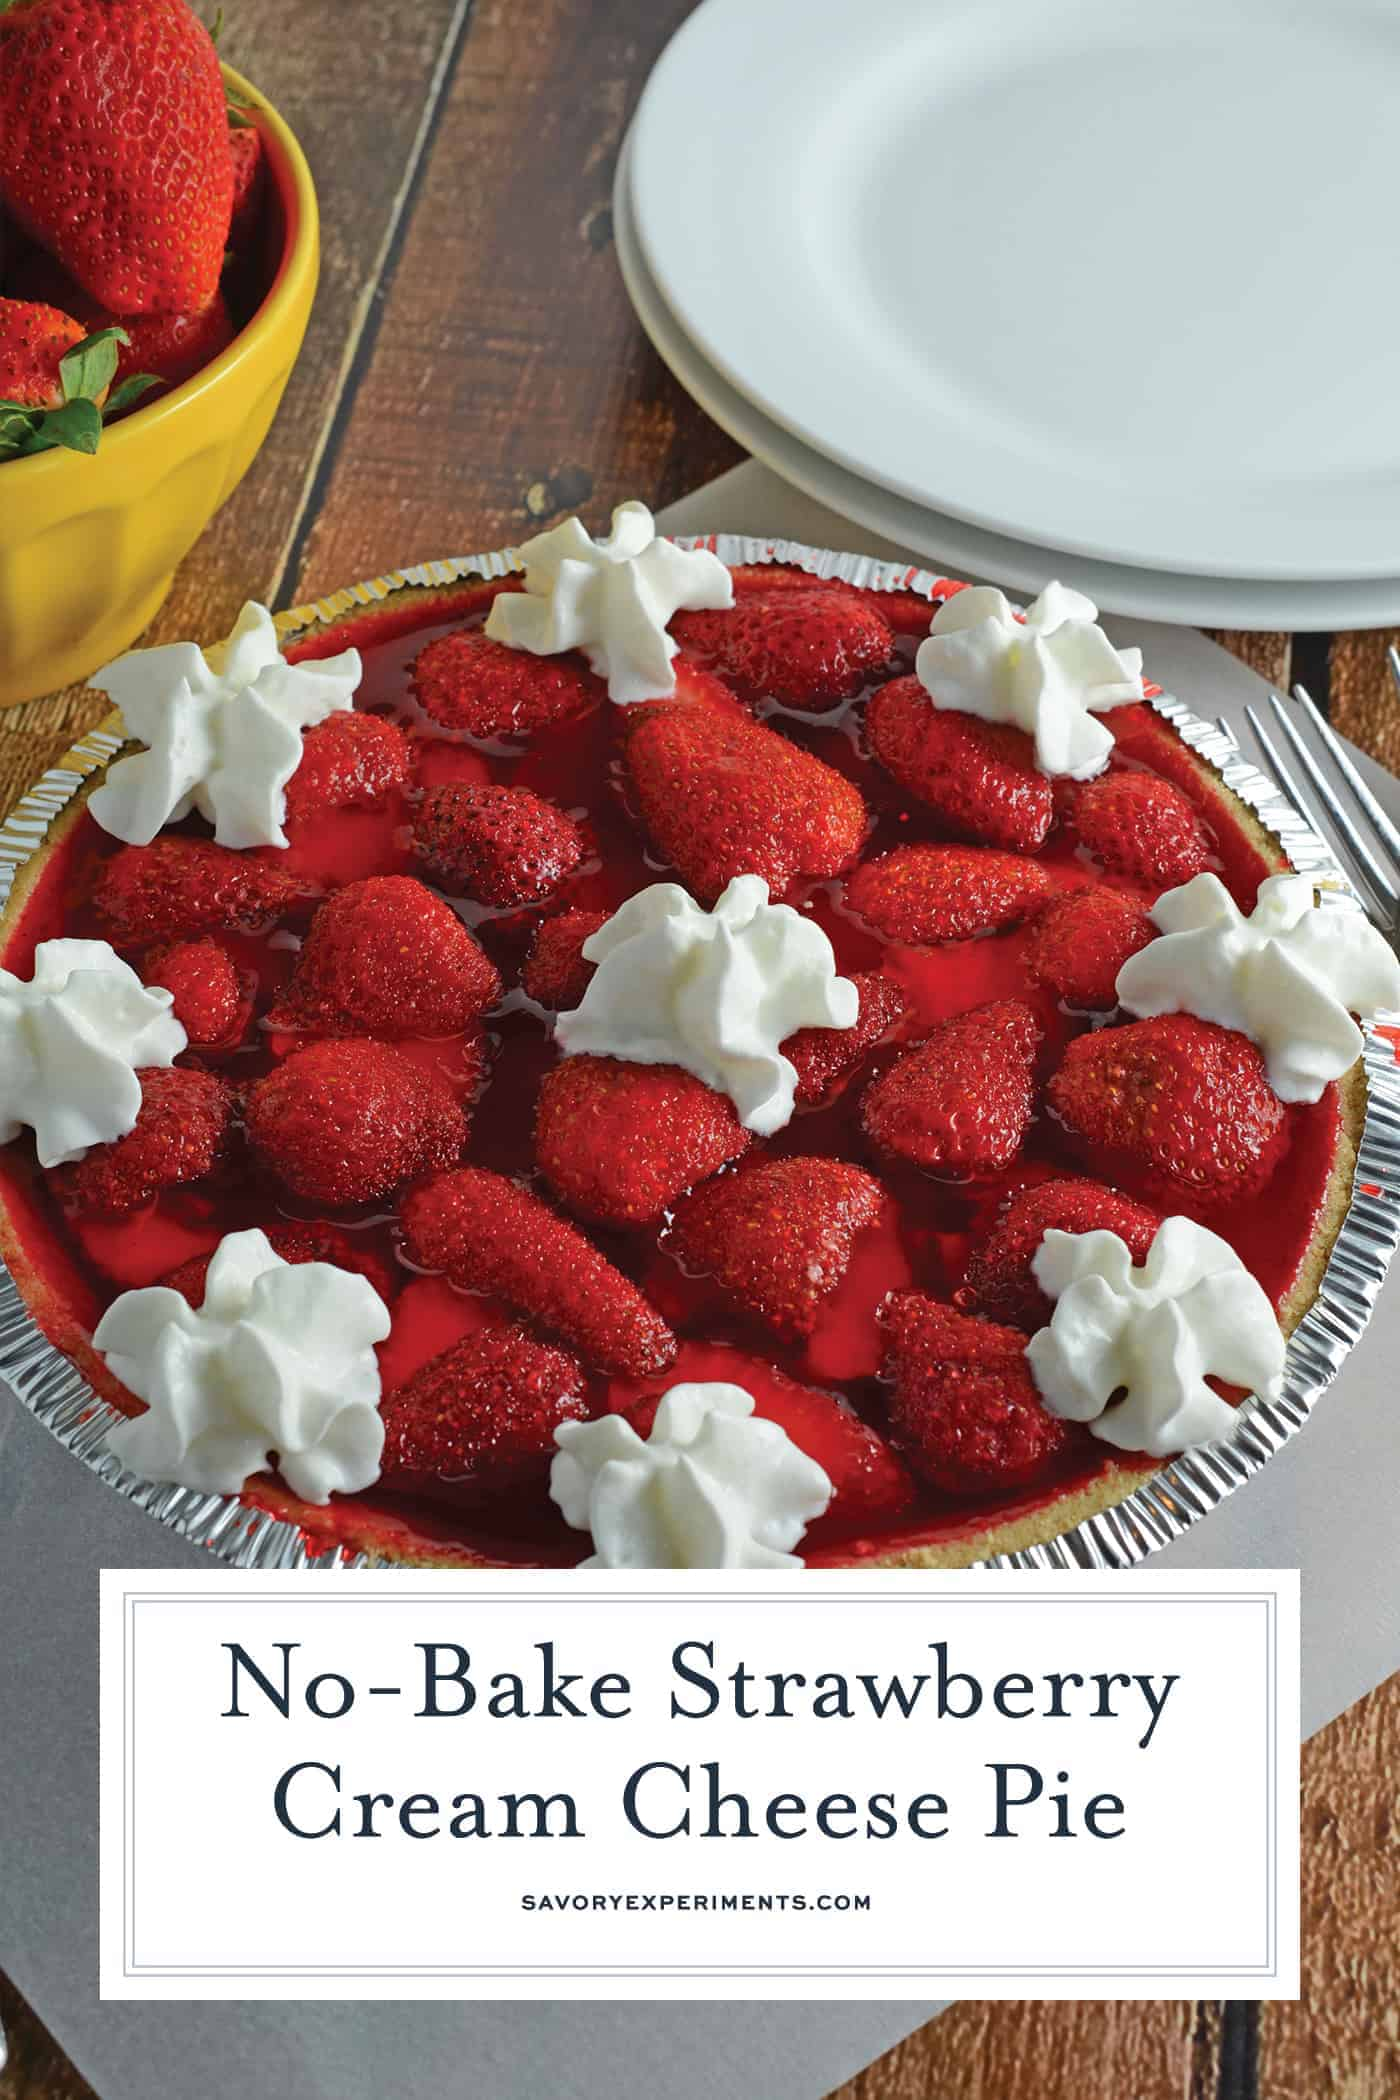 No-Bake Strawberry Cream Cheese Pie- A no-bake pie made with graham cracker crust, a layer of sweet cream cheese, loads of fresh strawberries and a homemade strawberry jelly. All ready in less than 20 minutes! www.savoryexperiments.com